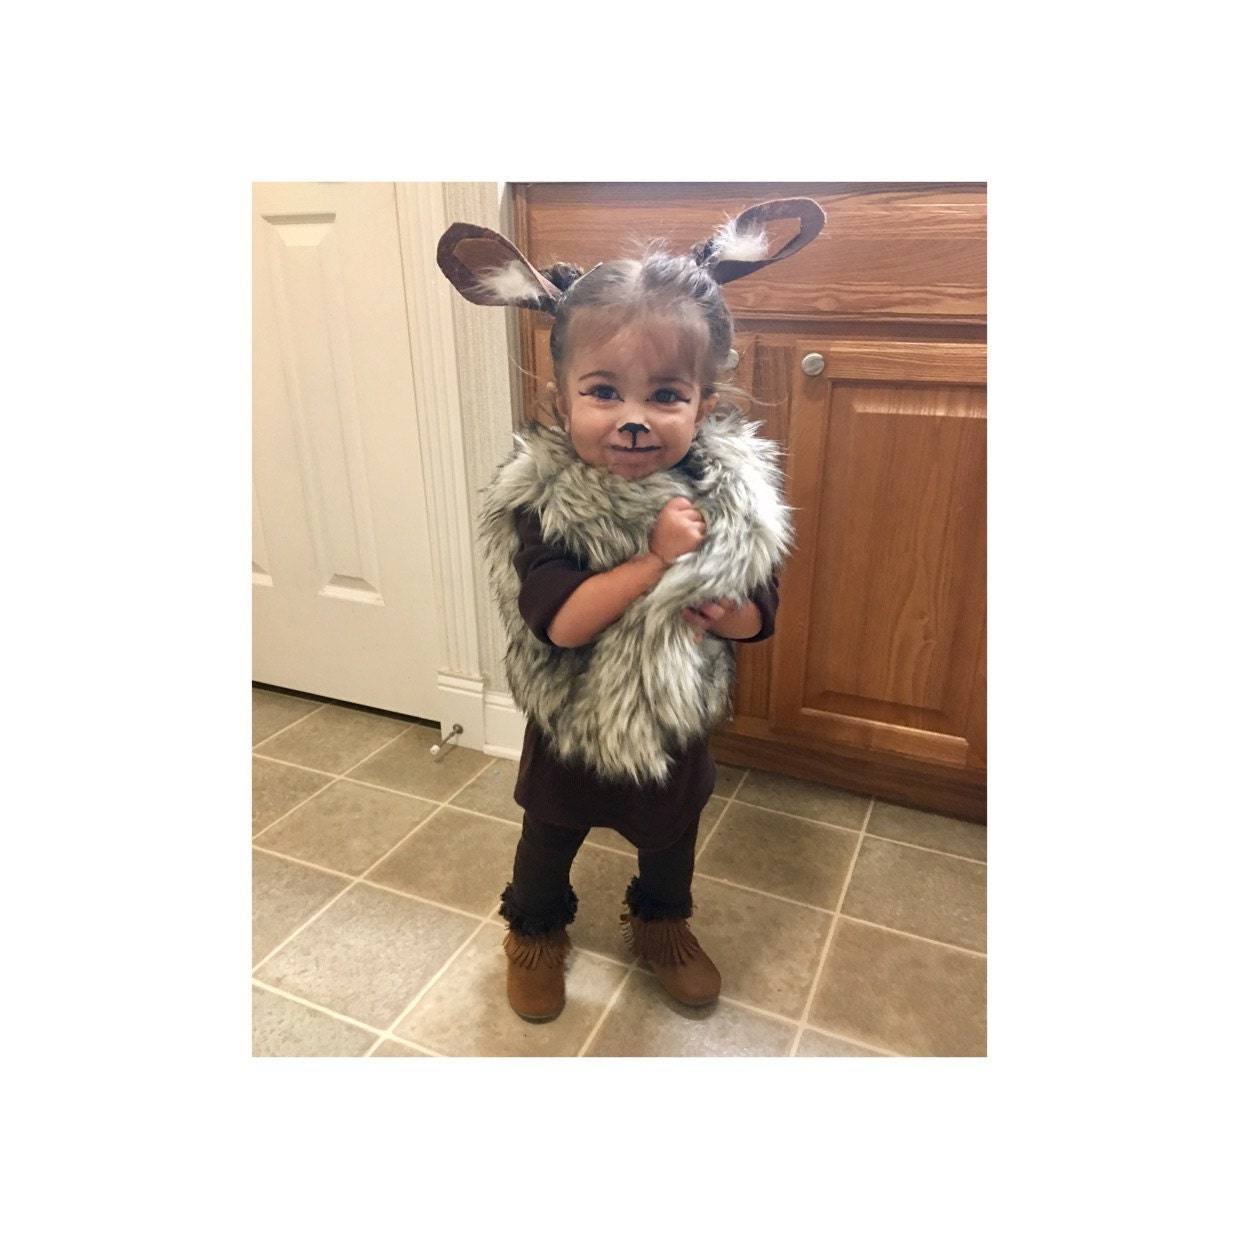 kalanicole23 added a photo of their purchase